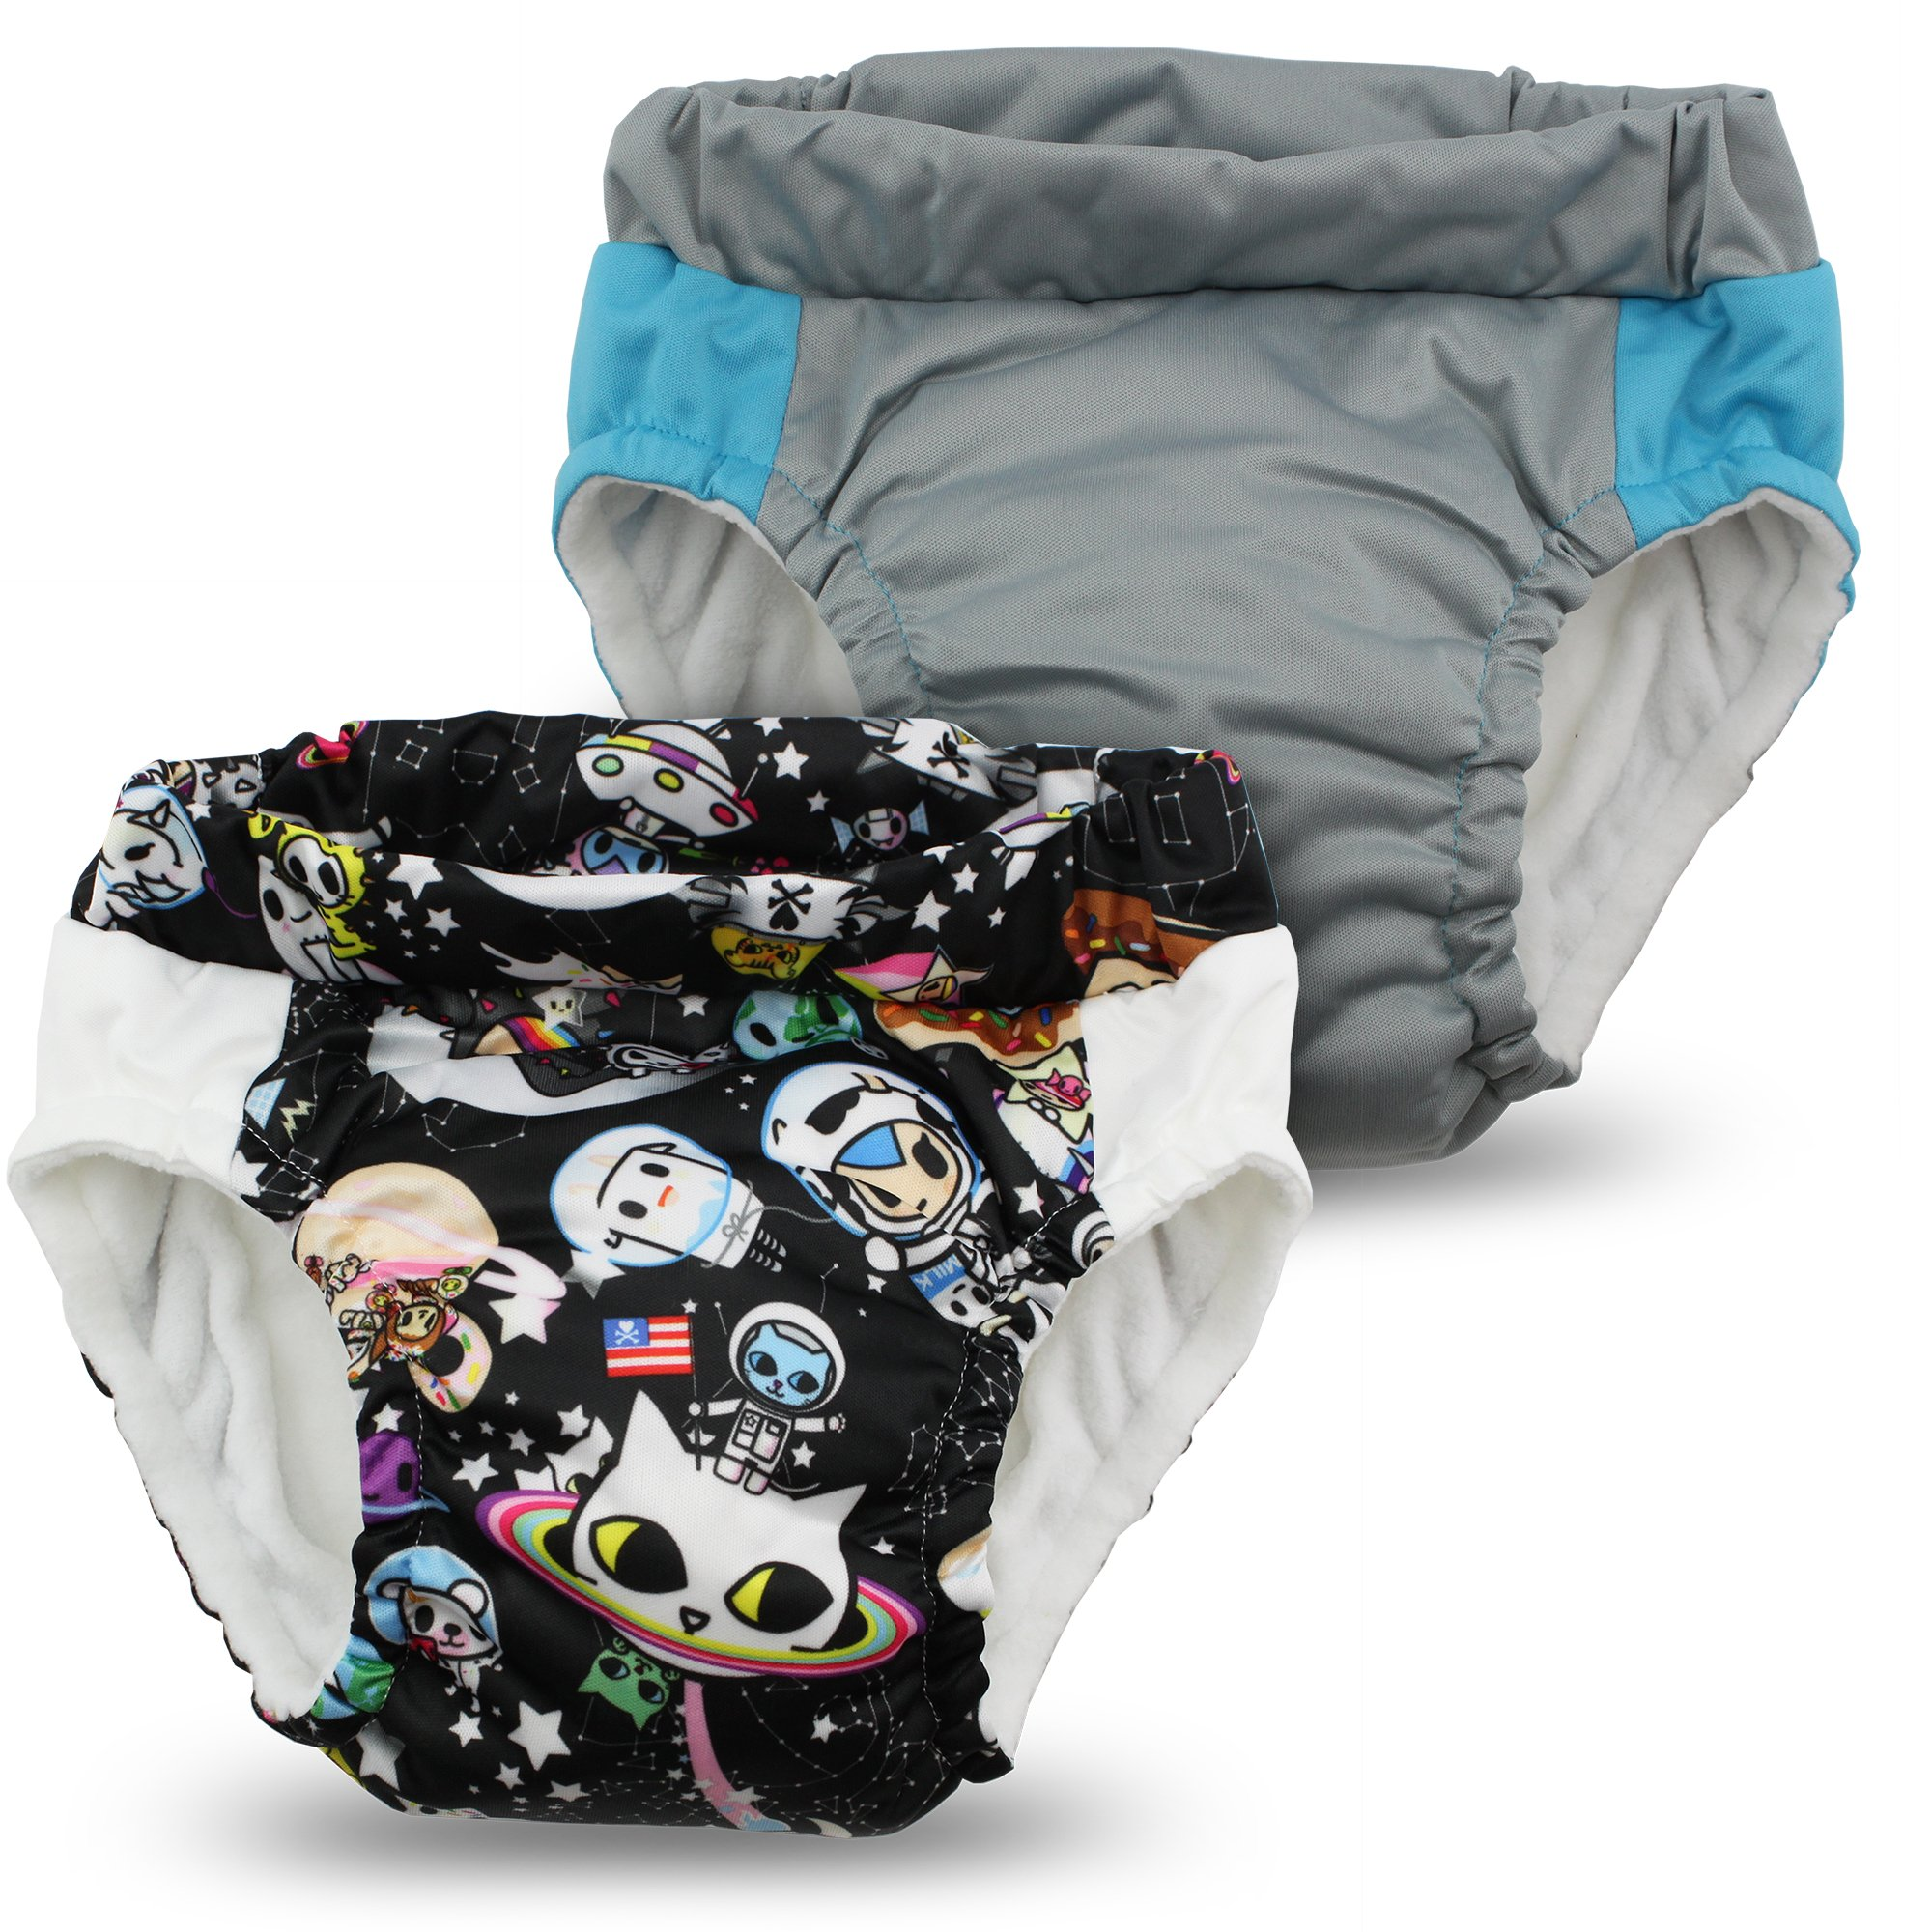 Kanga Care Lil Learnerz Toilet Training Pants, Tokispace & Platinum, Large